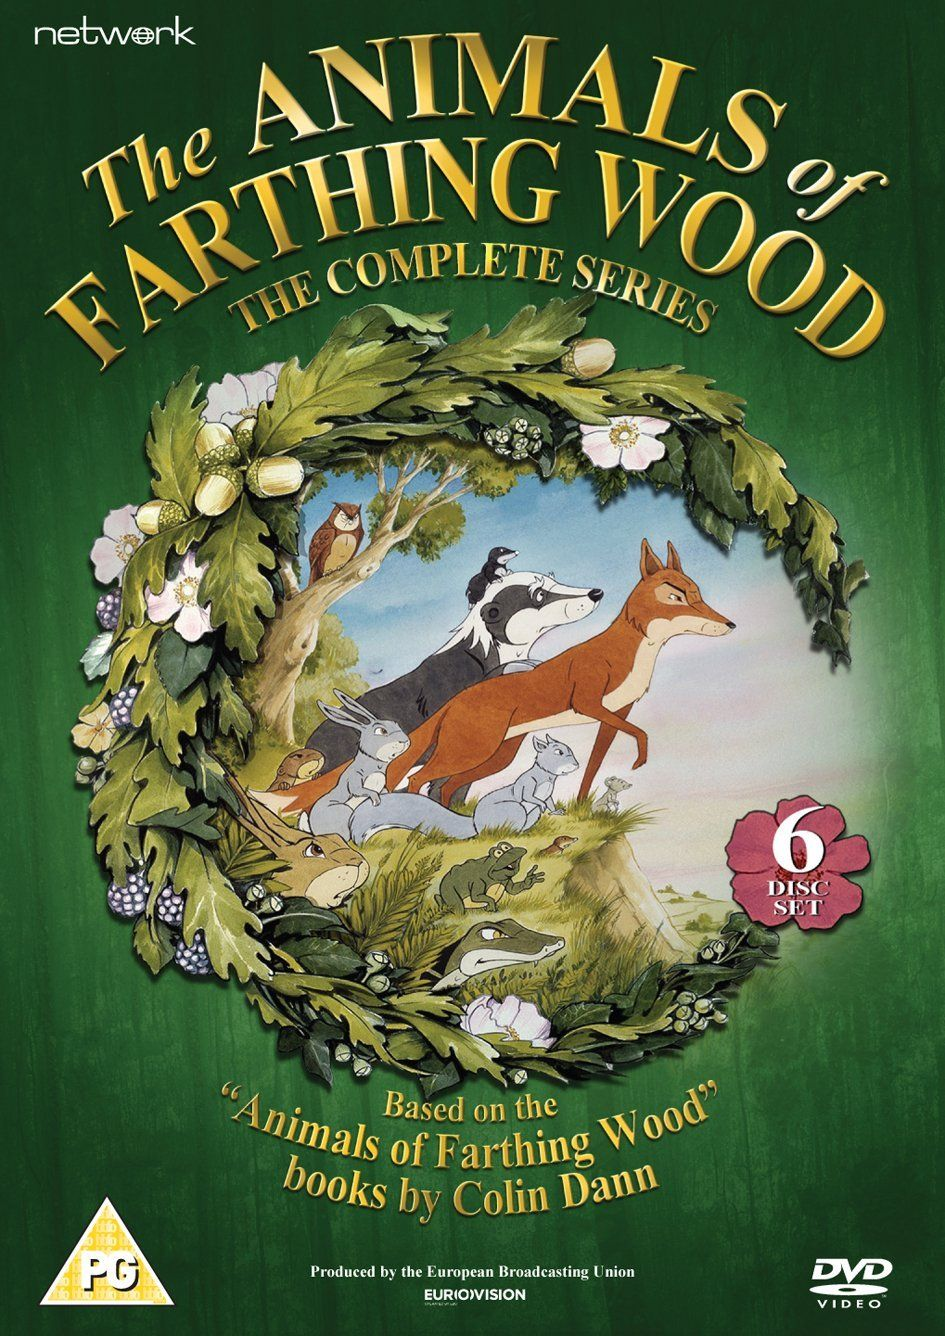 The Animals of Farthing Wood The Complete Series DVD